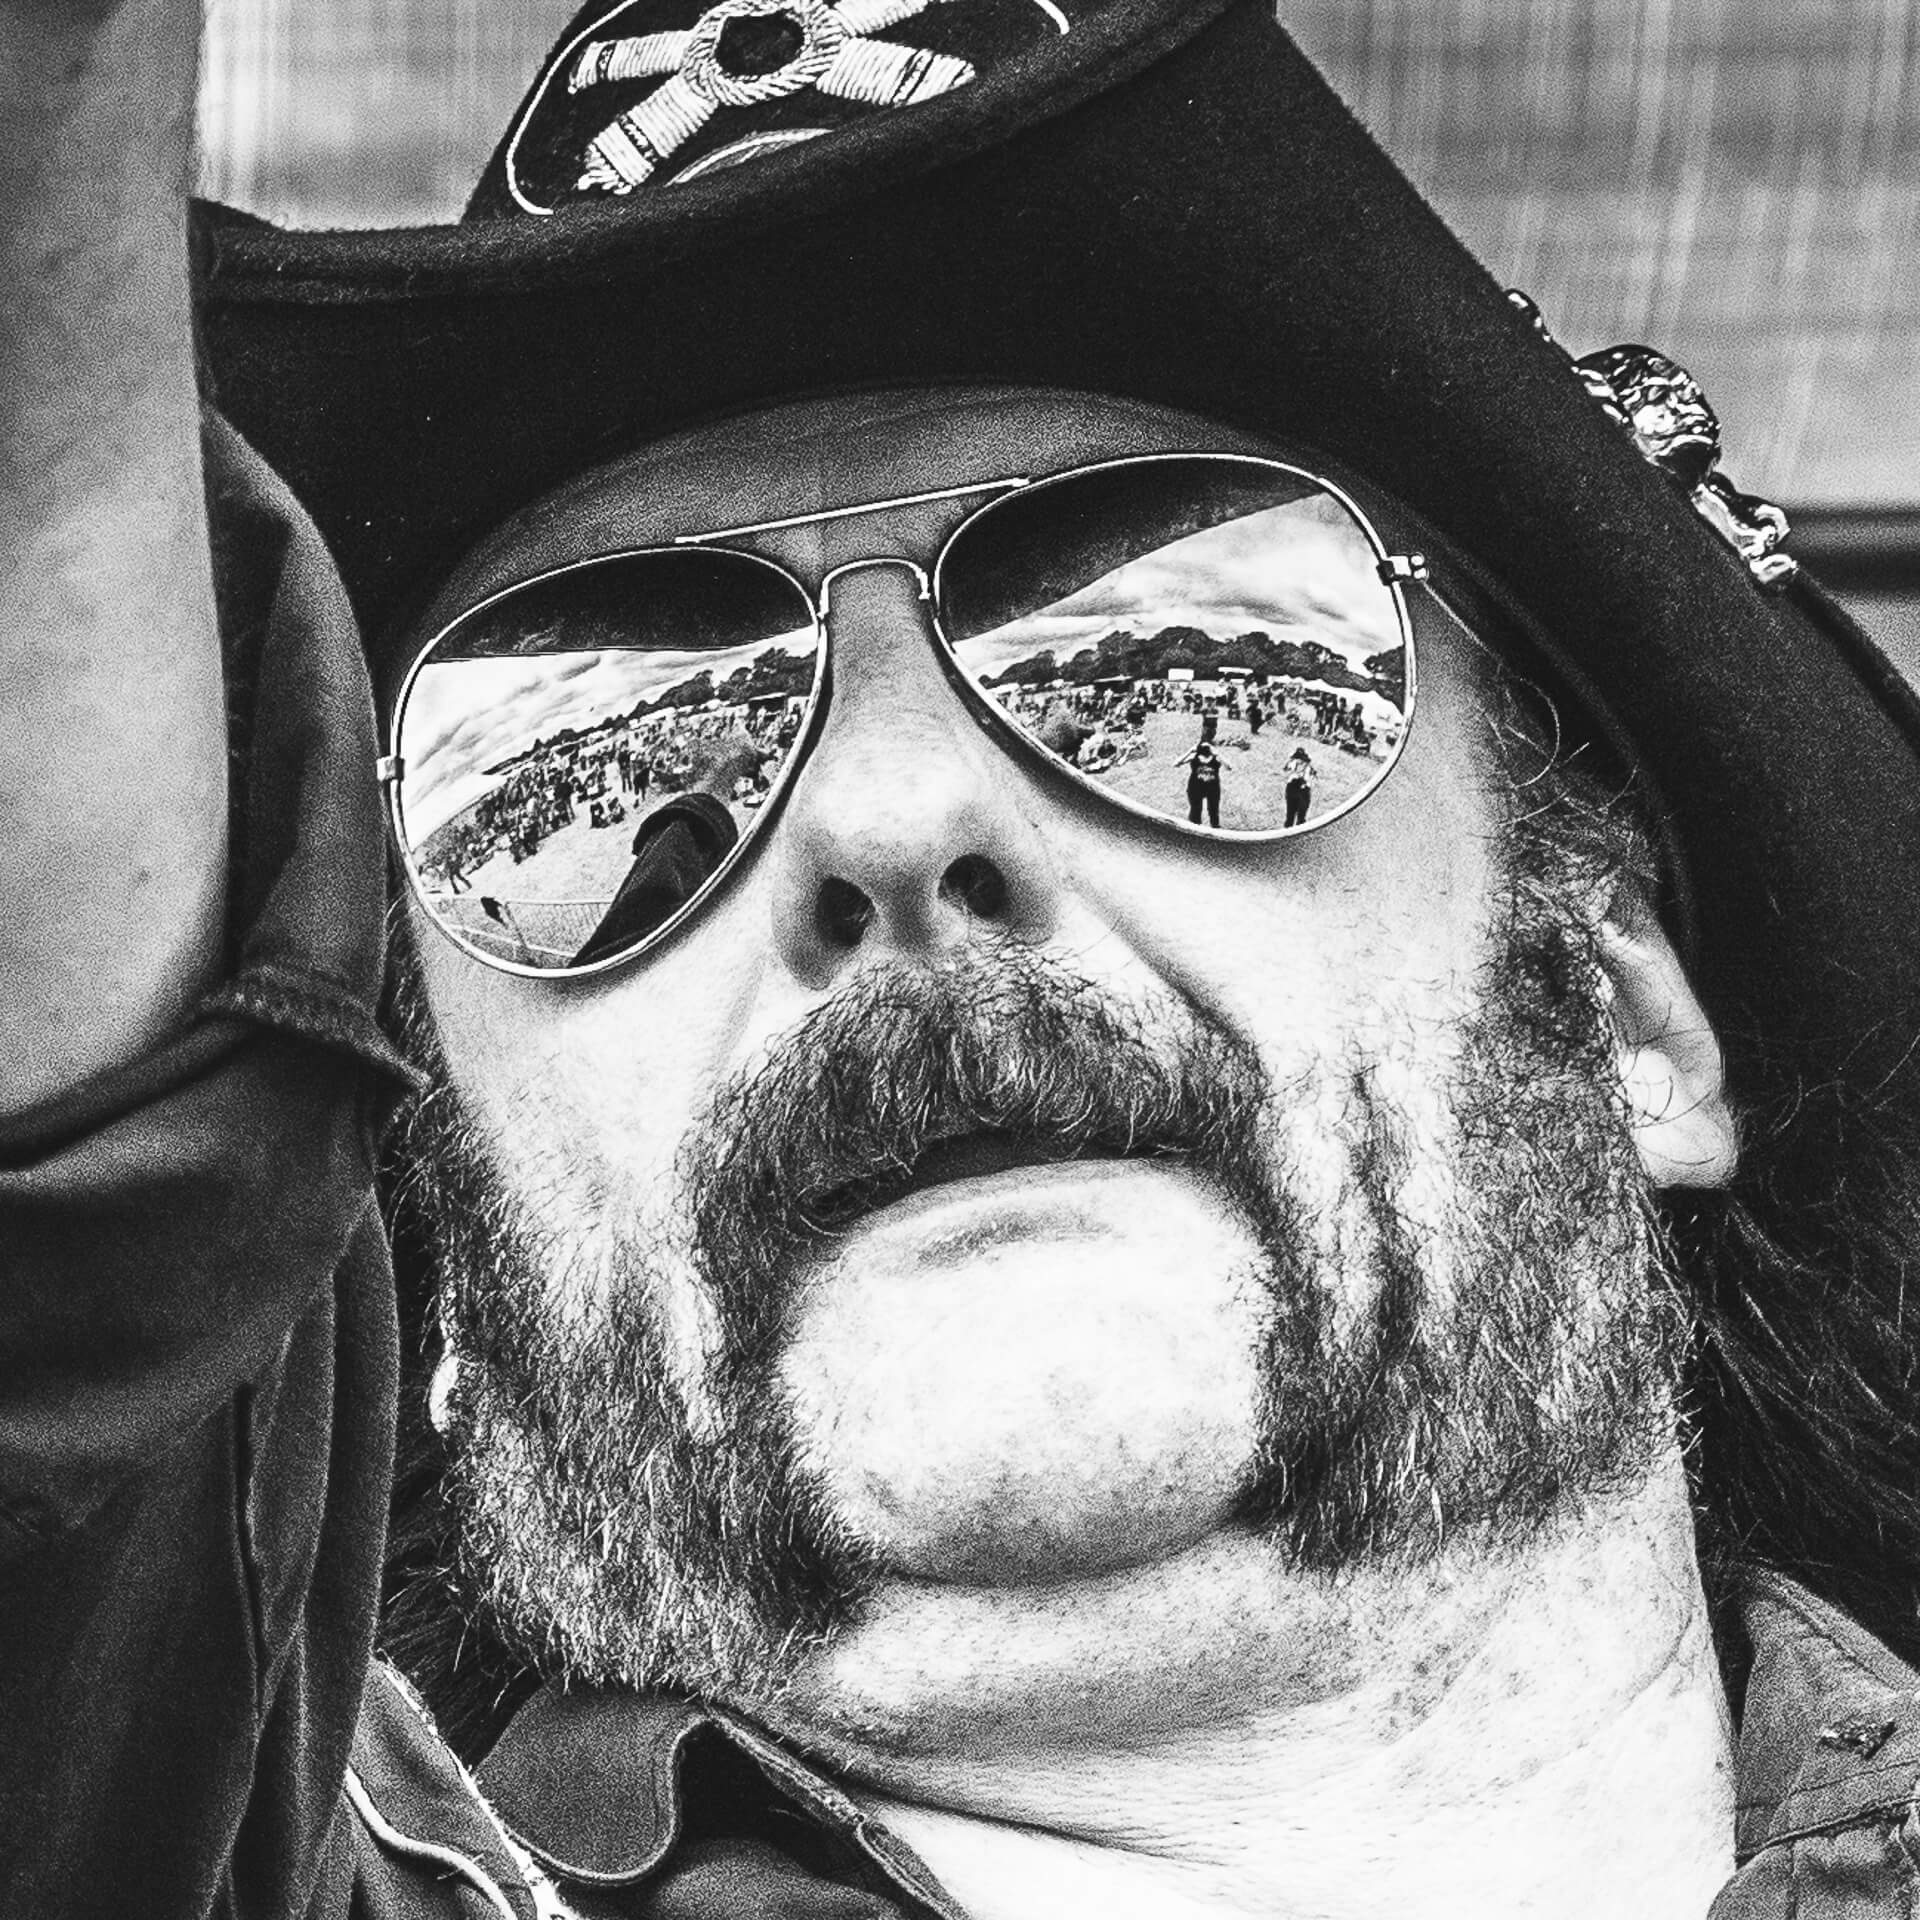 A very close up Black & White headshot of Lemmy aka Rob Campbell (the lead singer of Motorheadache, a Motorhead tribute band) on stage at The Drunken Monkey Festival 2017